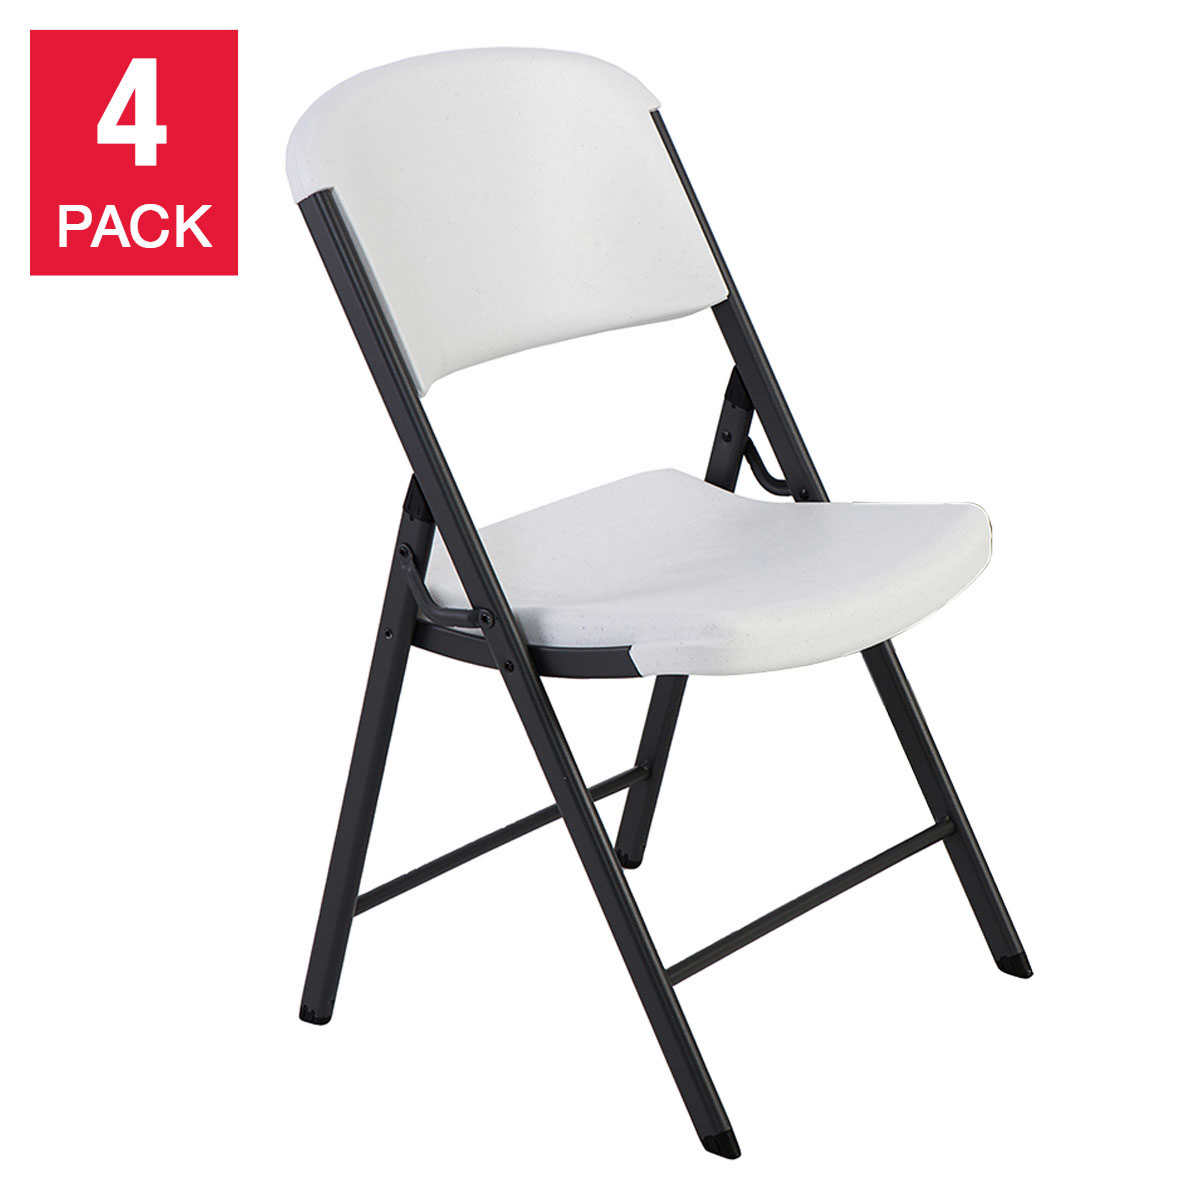 decorative folding chairs.htm lifetime folding chairs  white or beige  4 pack  lifetime folding chairs  white or beige